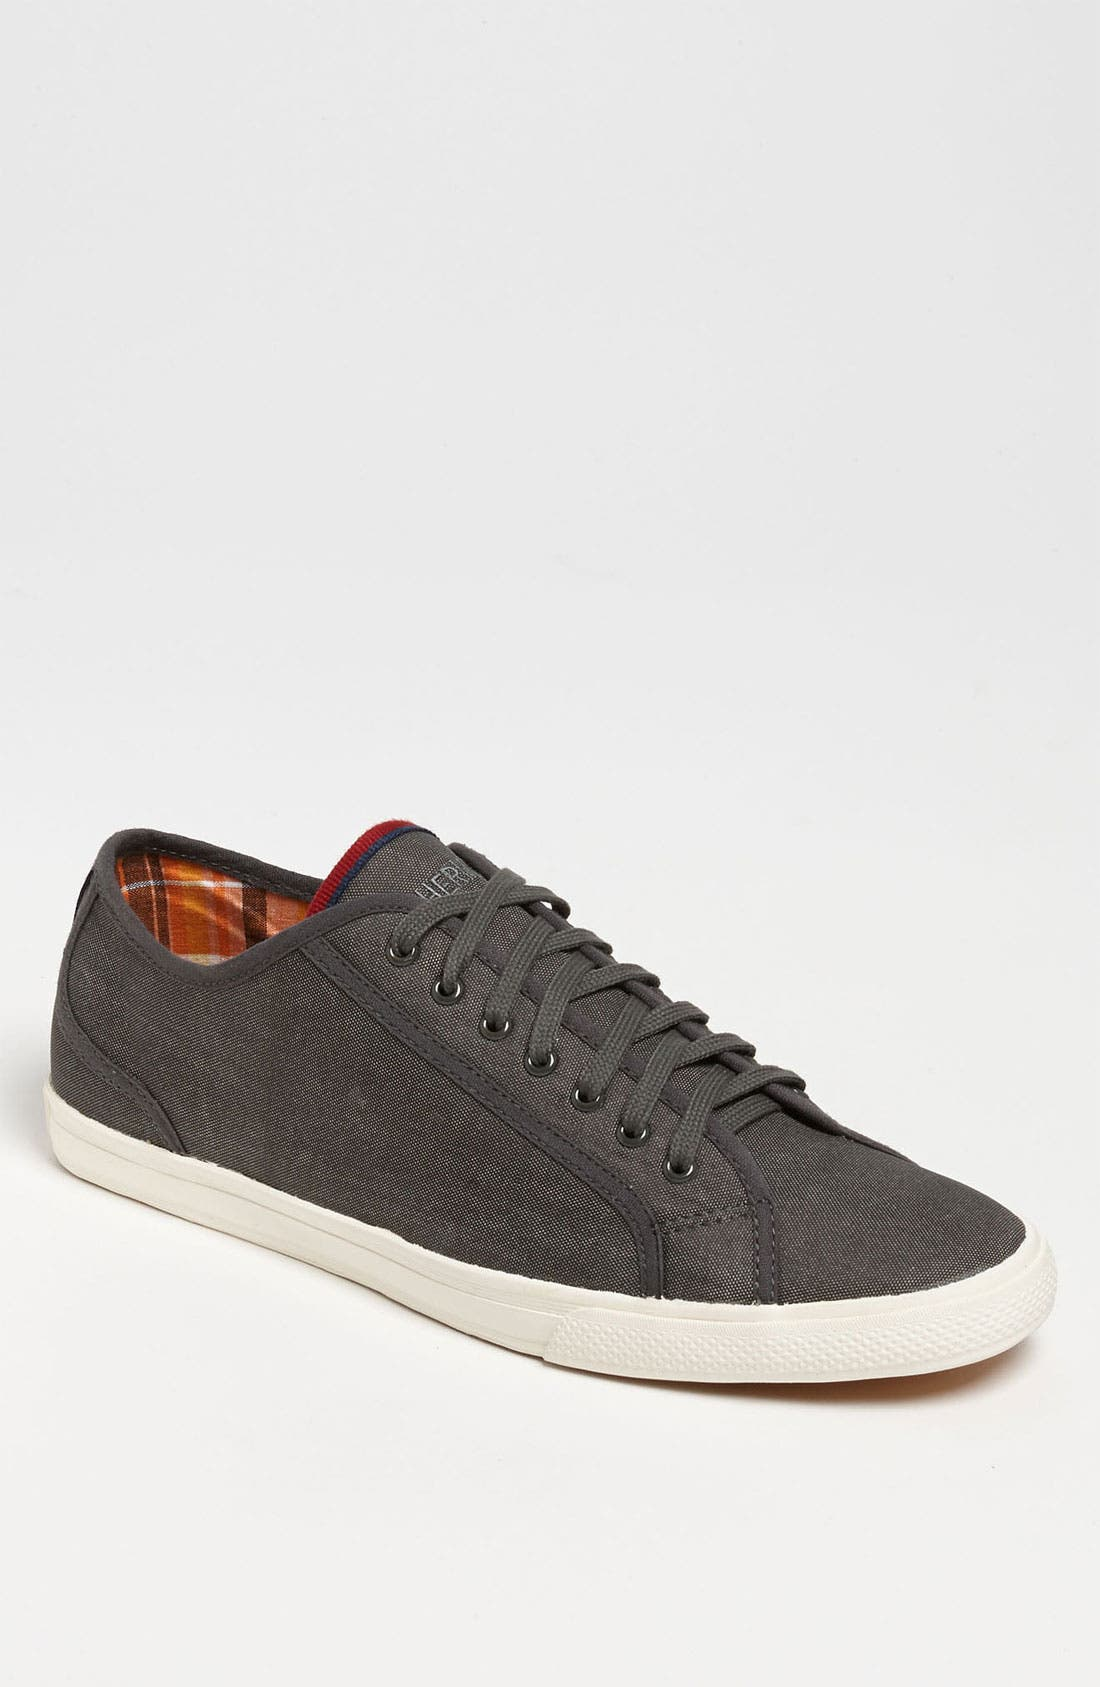 Alternate Image 1 Selected - Ben Sherman 'Breckon Low' Sneaker